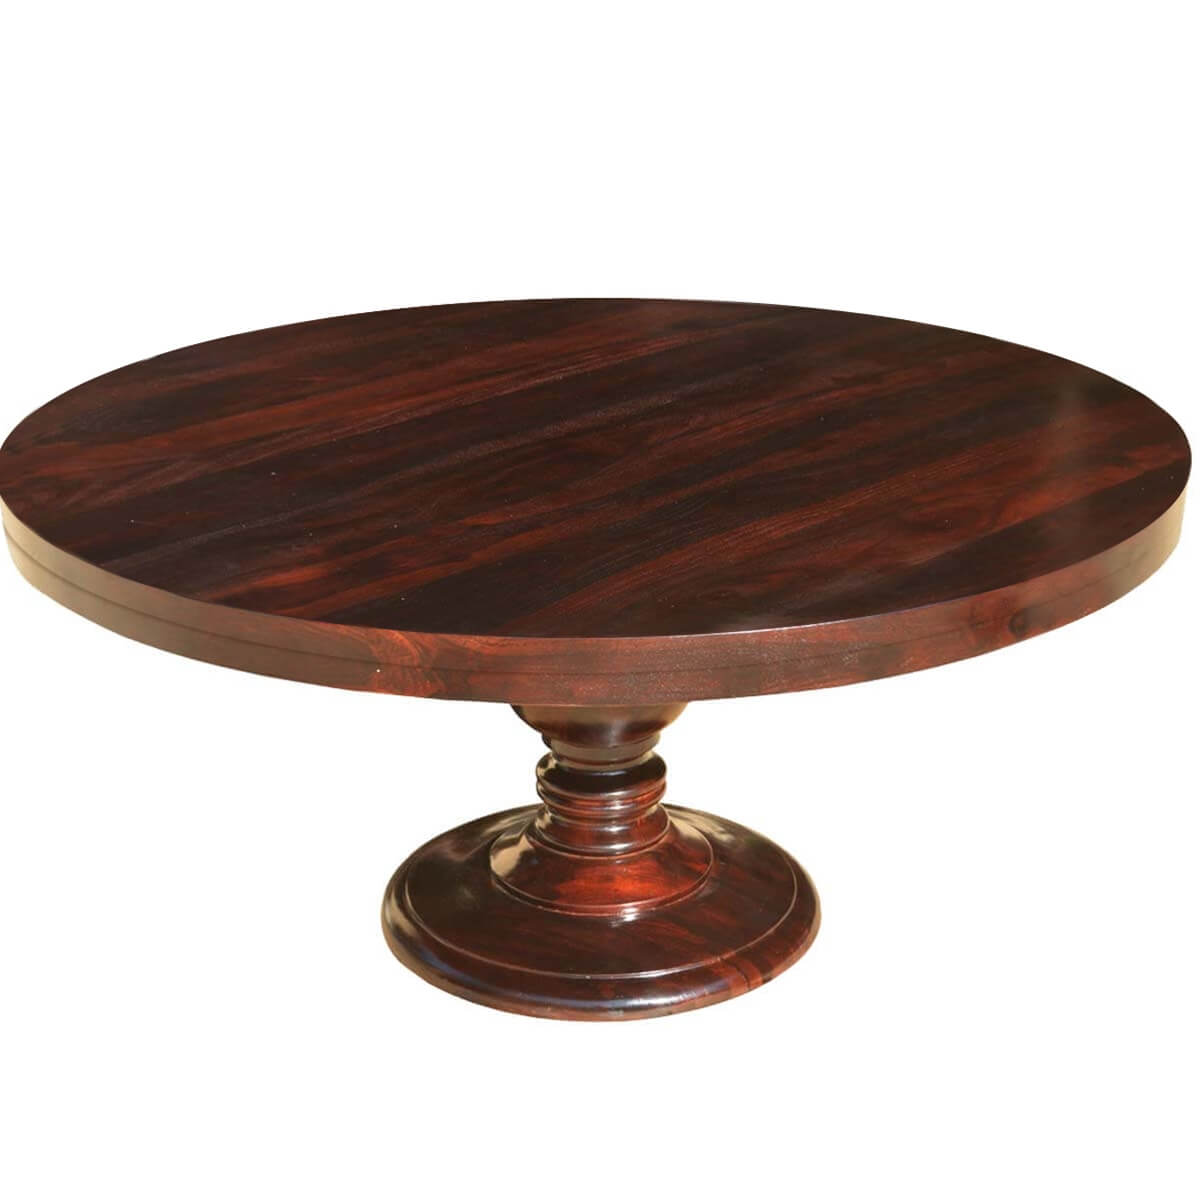 colonial american solid wood pedestal 72 round dining table. Black Bedroom Furniture Sets. Home Design Ideas